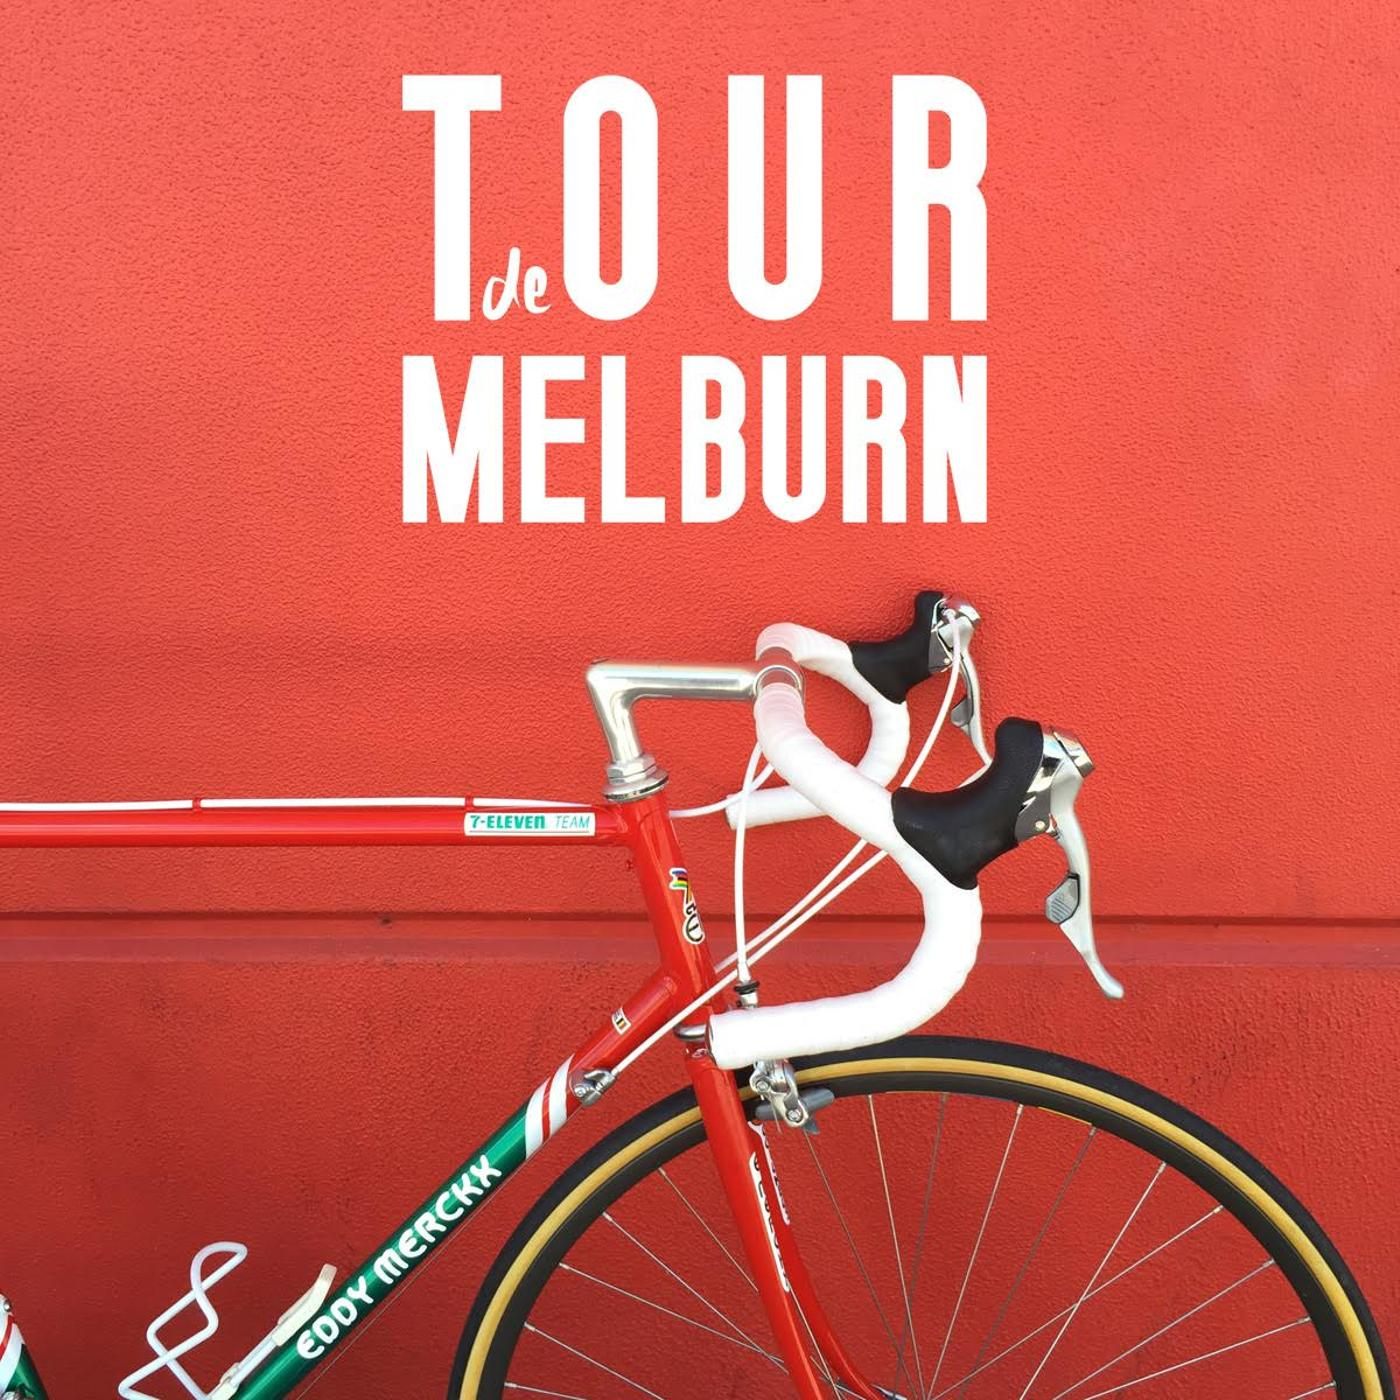 The Tour de Melburn: Australia's Summer Time Fun Ride